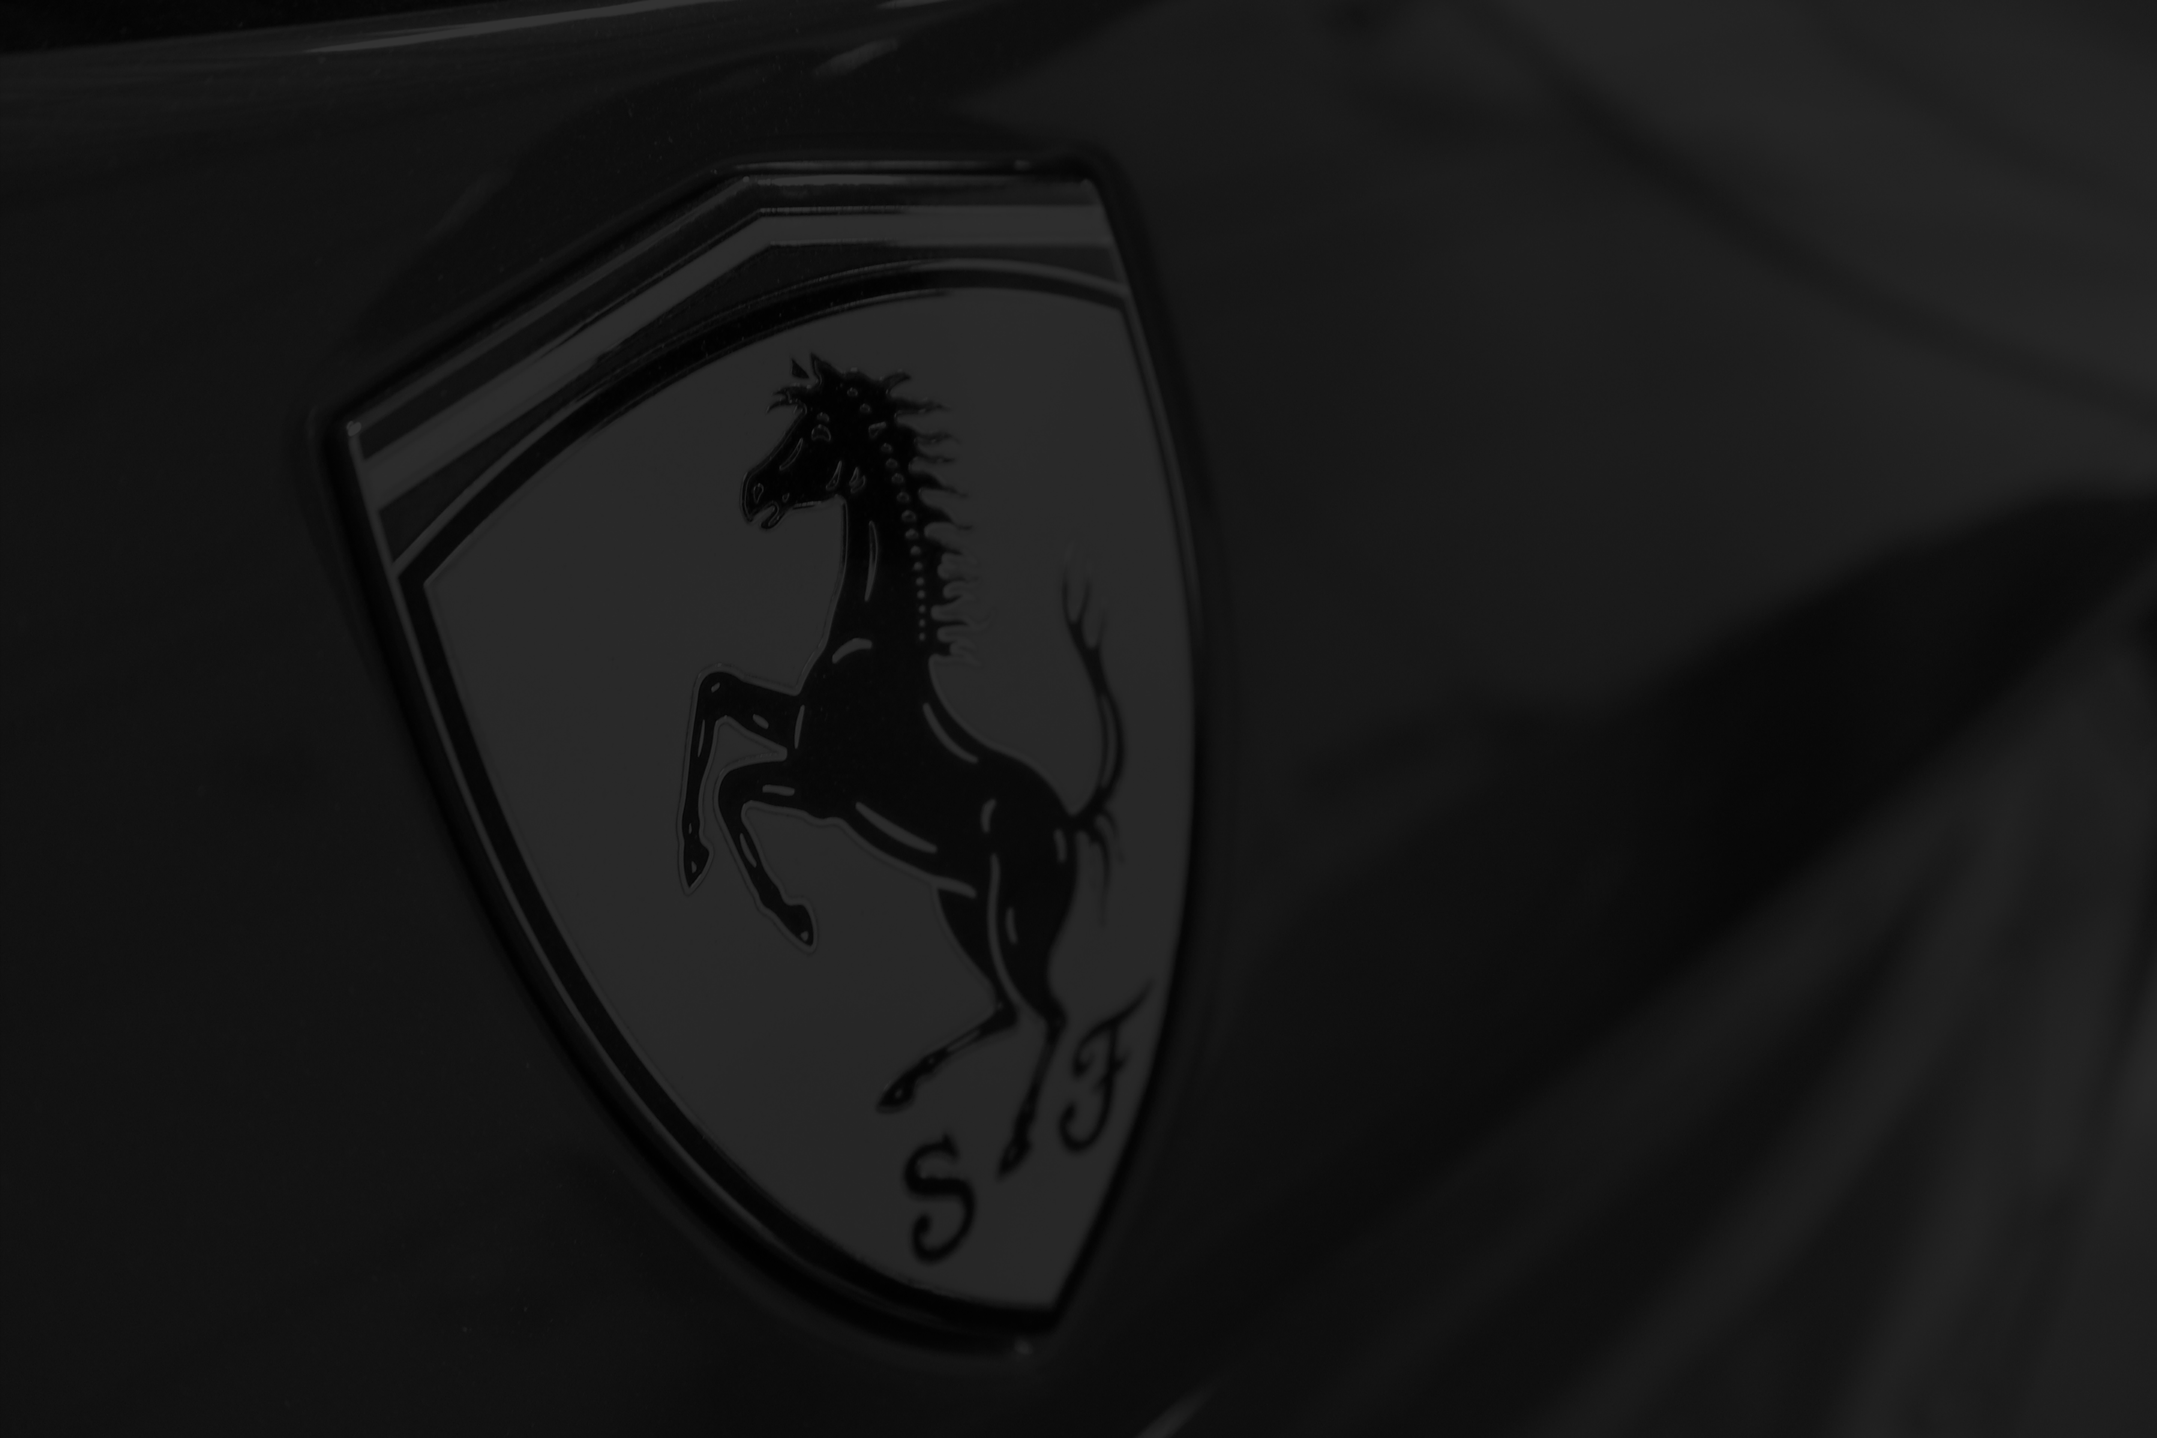 Findlay Ford Las Vegas You are here: Home → Services → Paint & Auto Body → ferrari